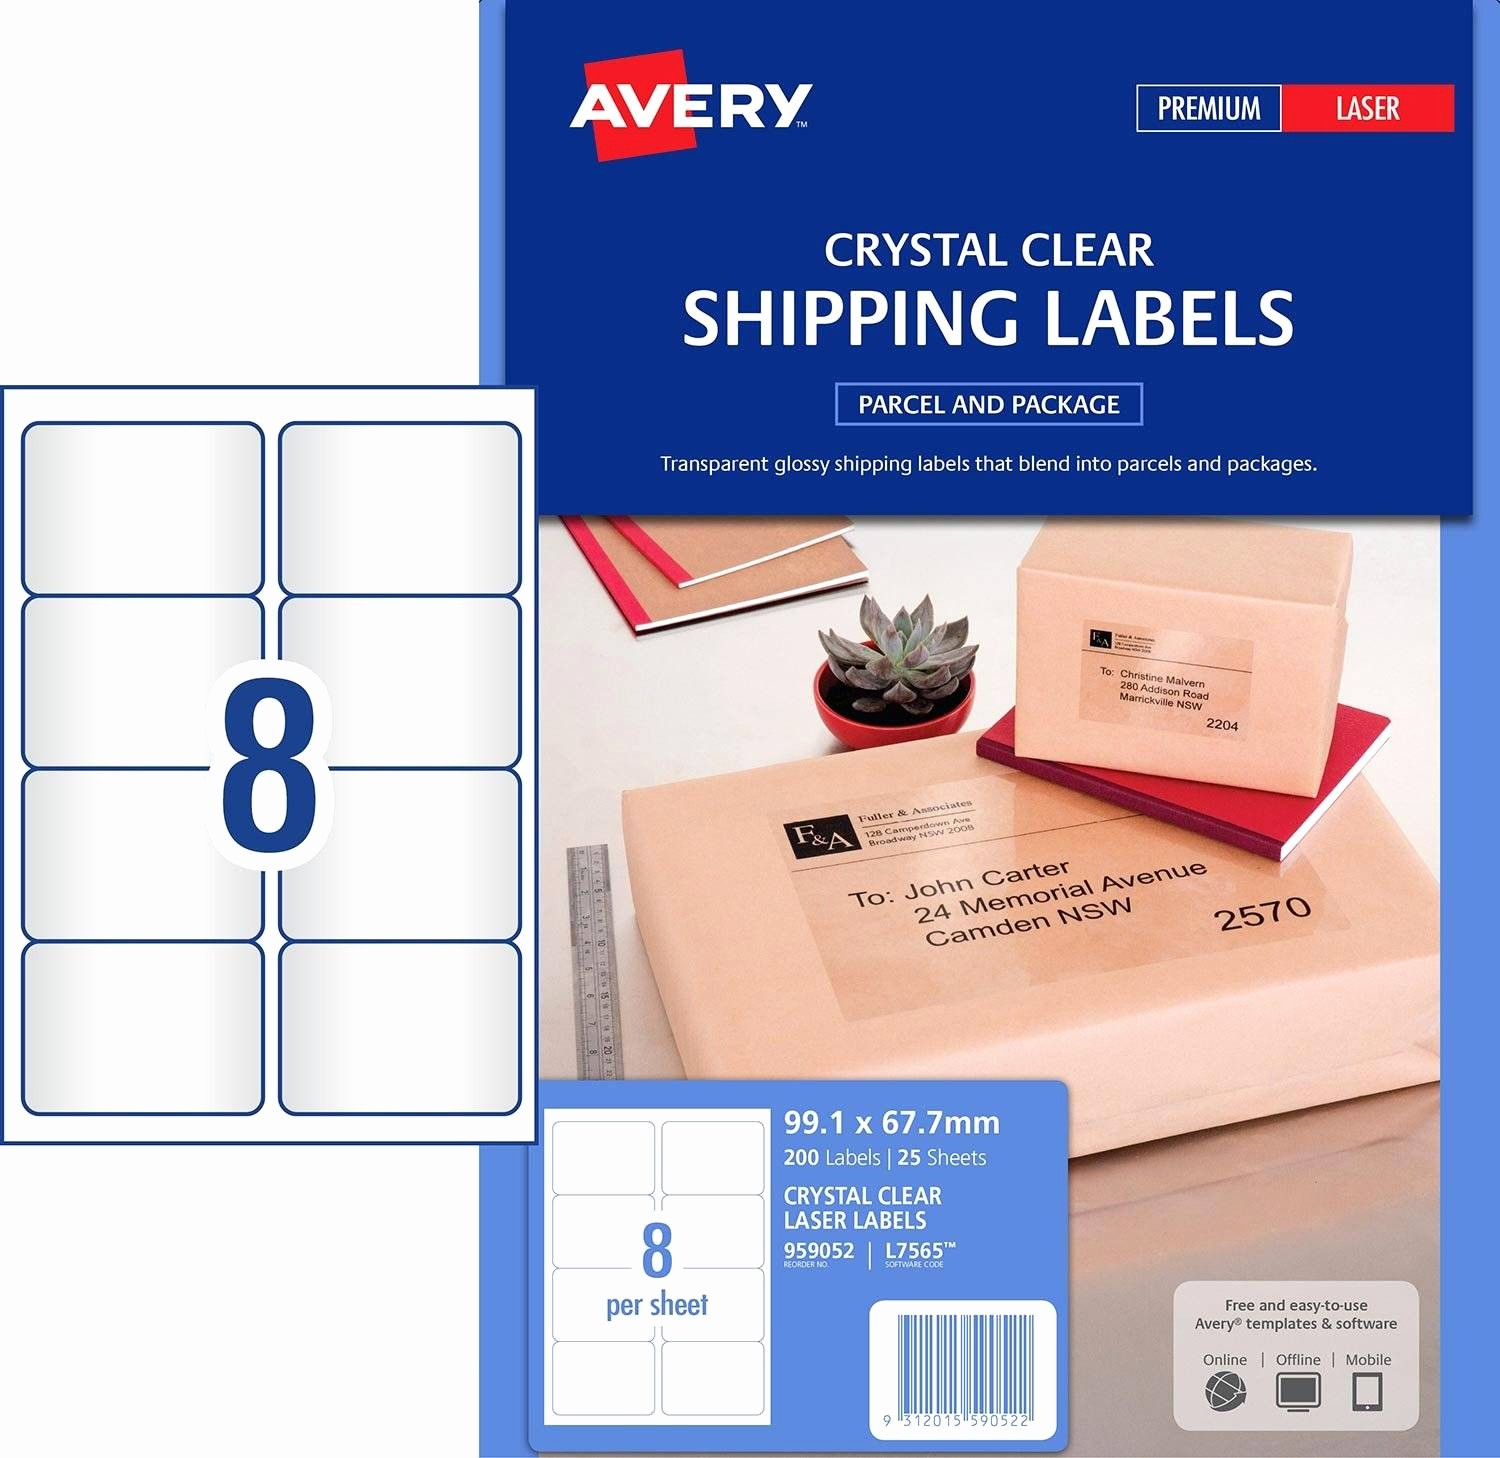 Avery Label 8 Per Page Elegant Crystal Clear Shipping Labels